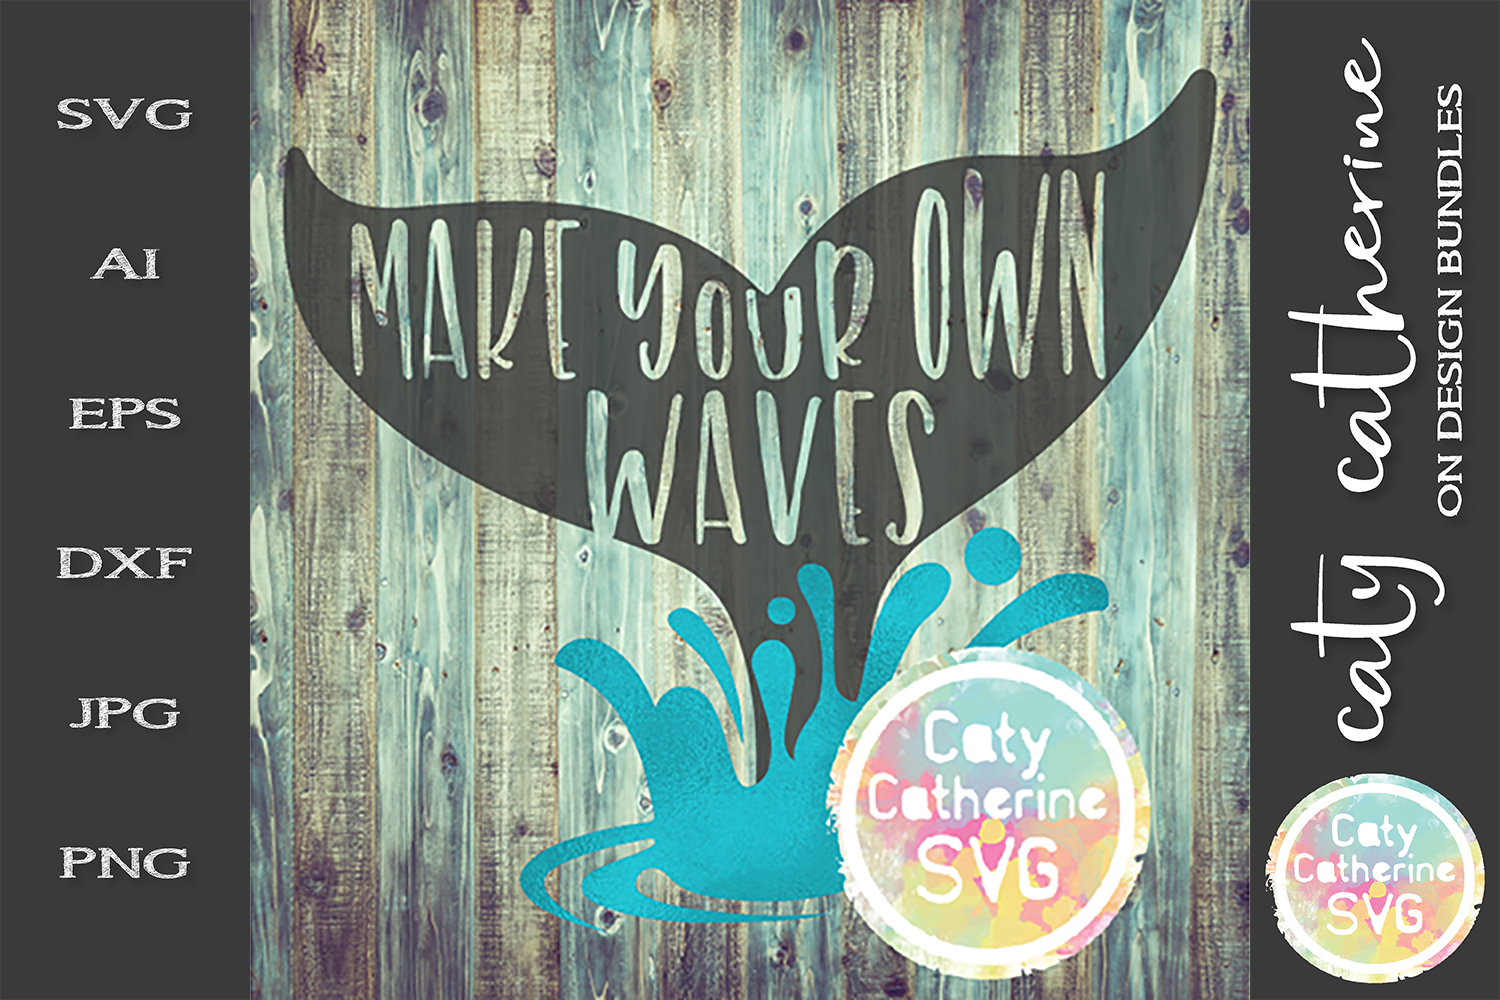 Make Your Own Waves SVG Cut File example image 1